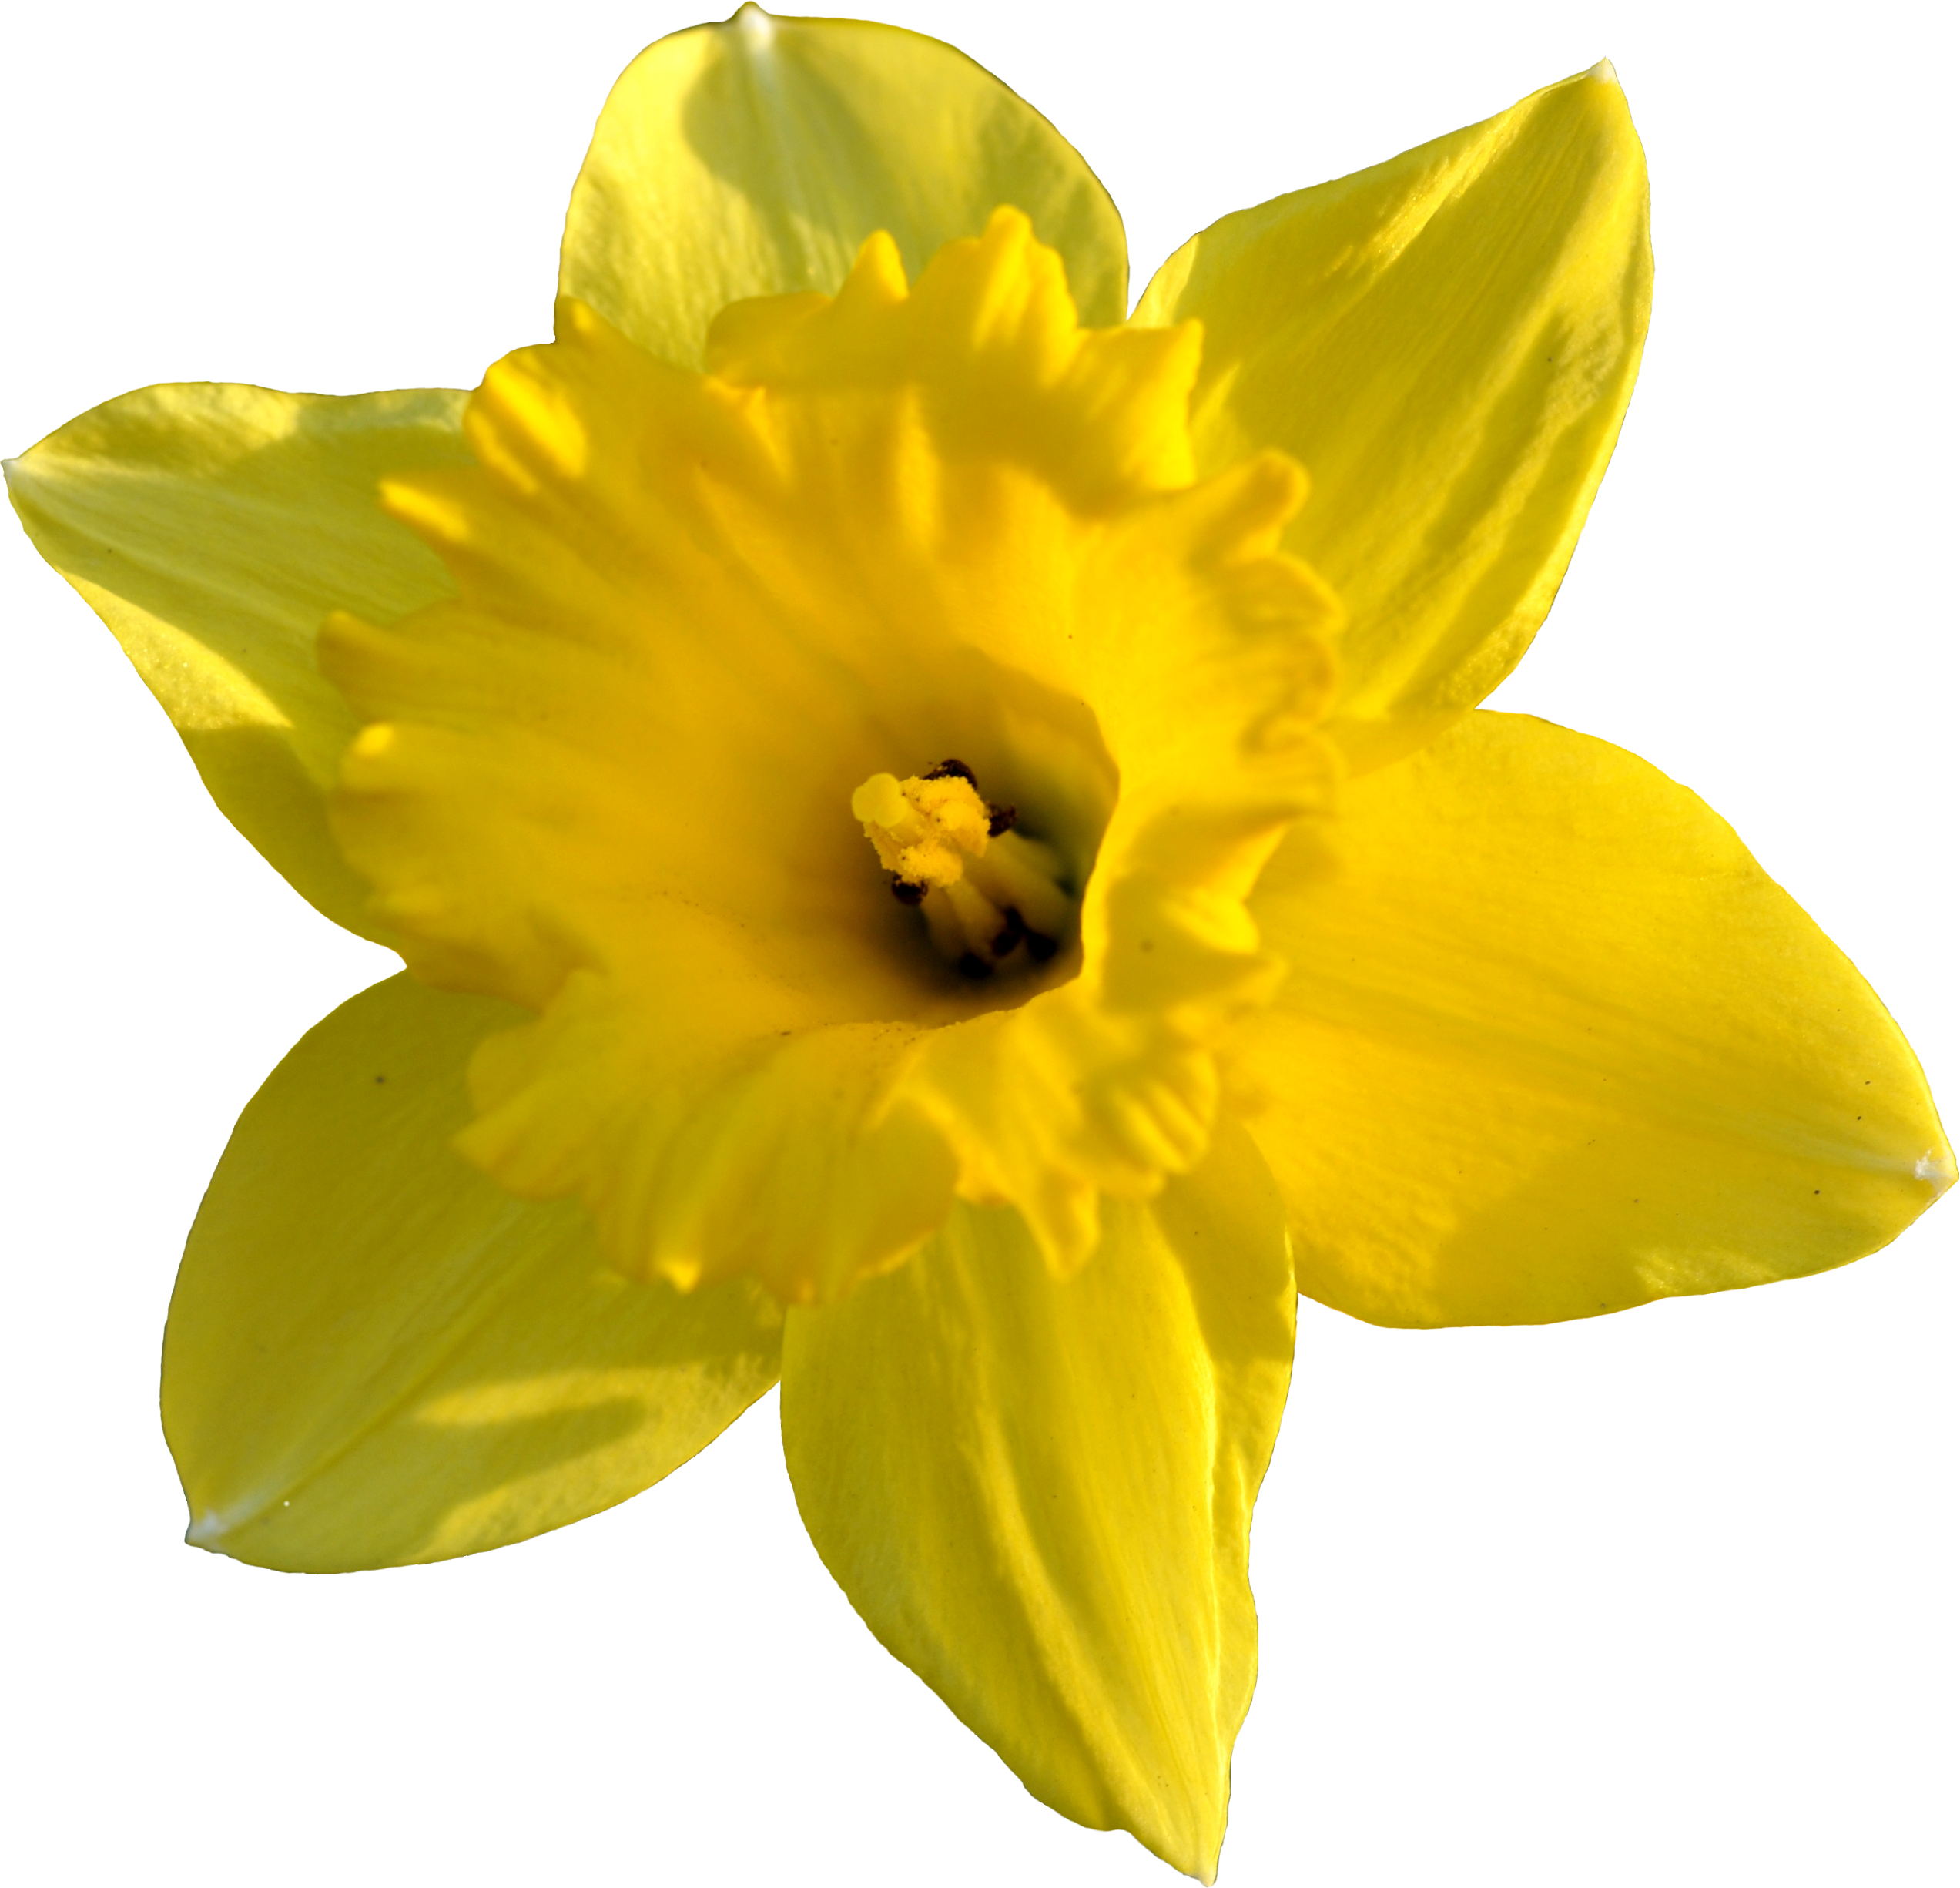 Daffodil clipart #3, Download drawings